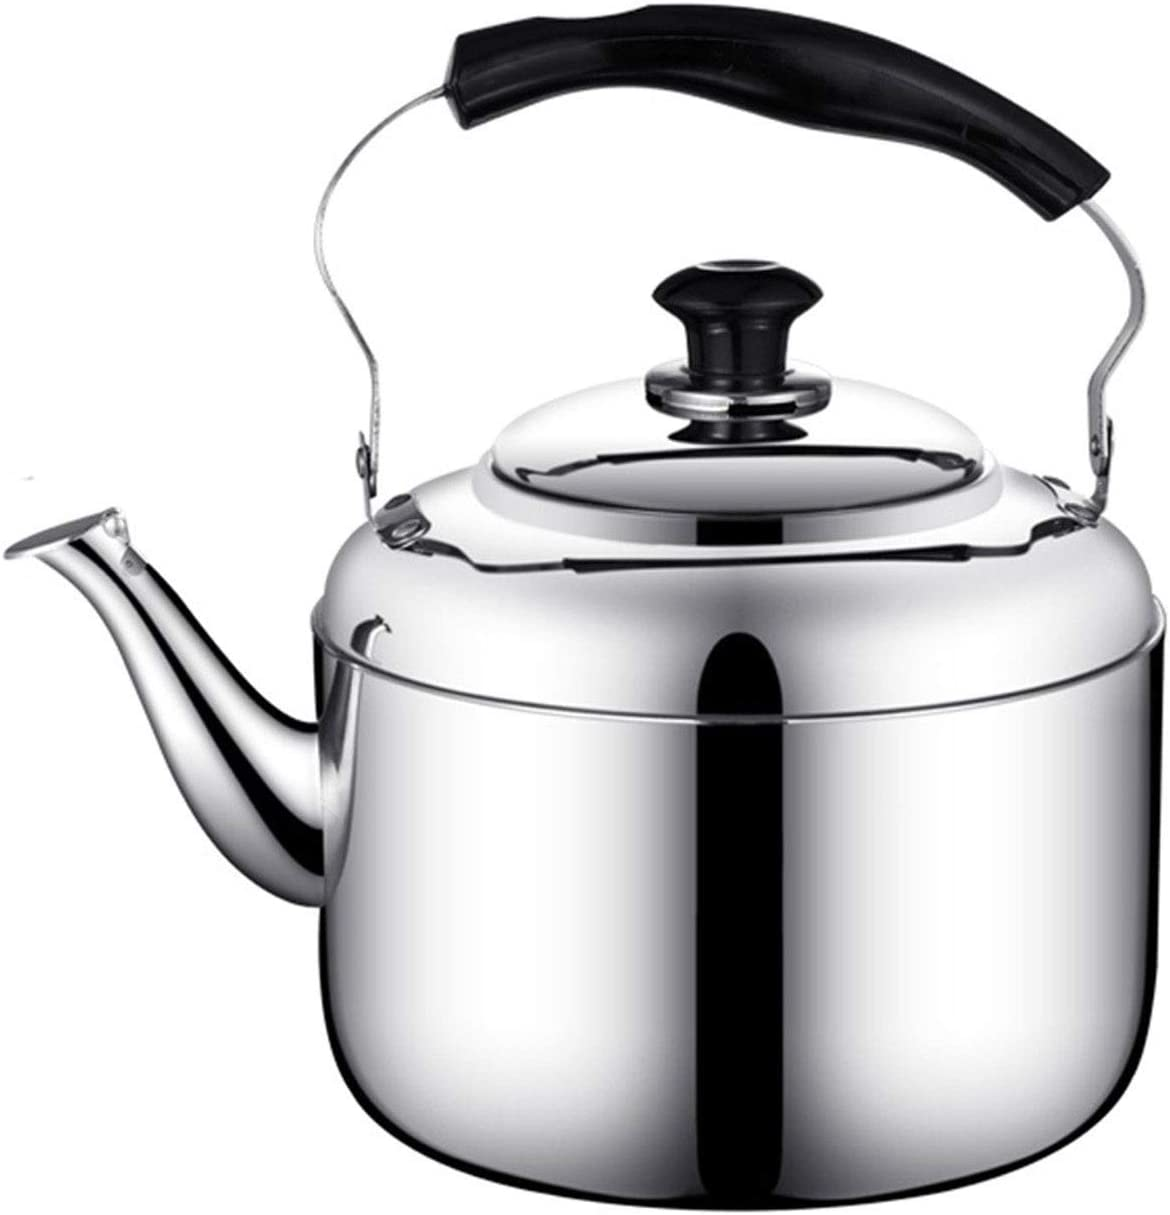 Food Grade Stainless Steel Whistle Teapot Filter with Holes and Challenge the lowest price of Japan Sales for sale